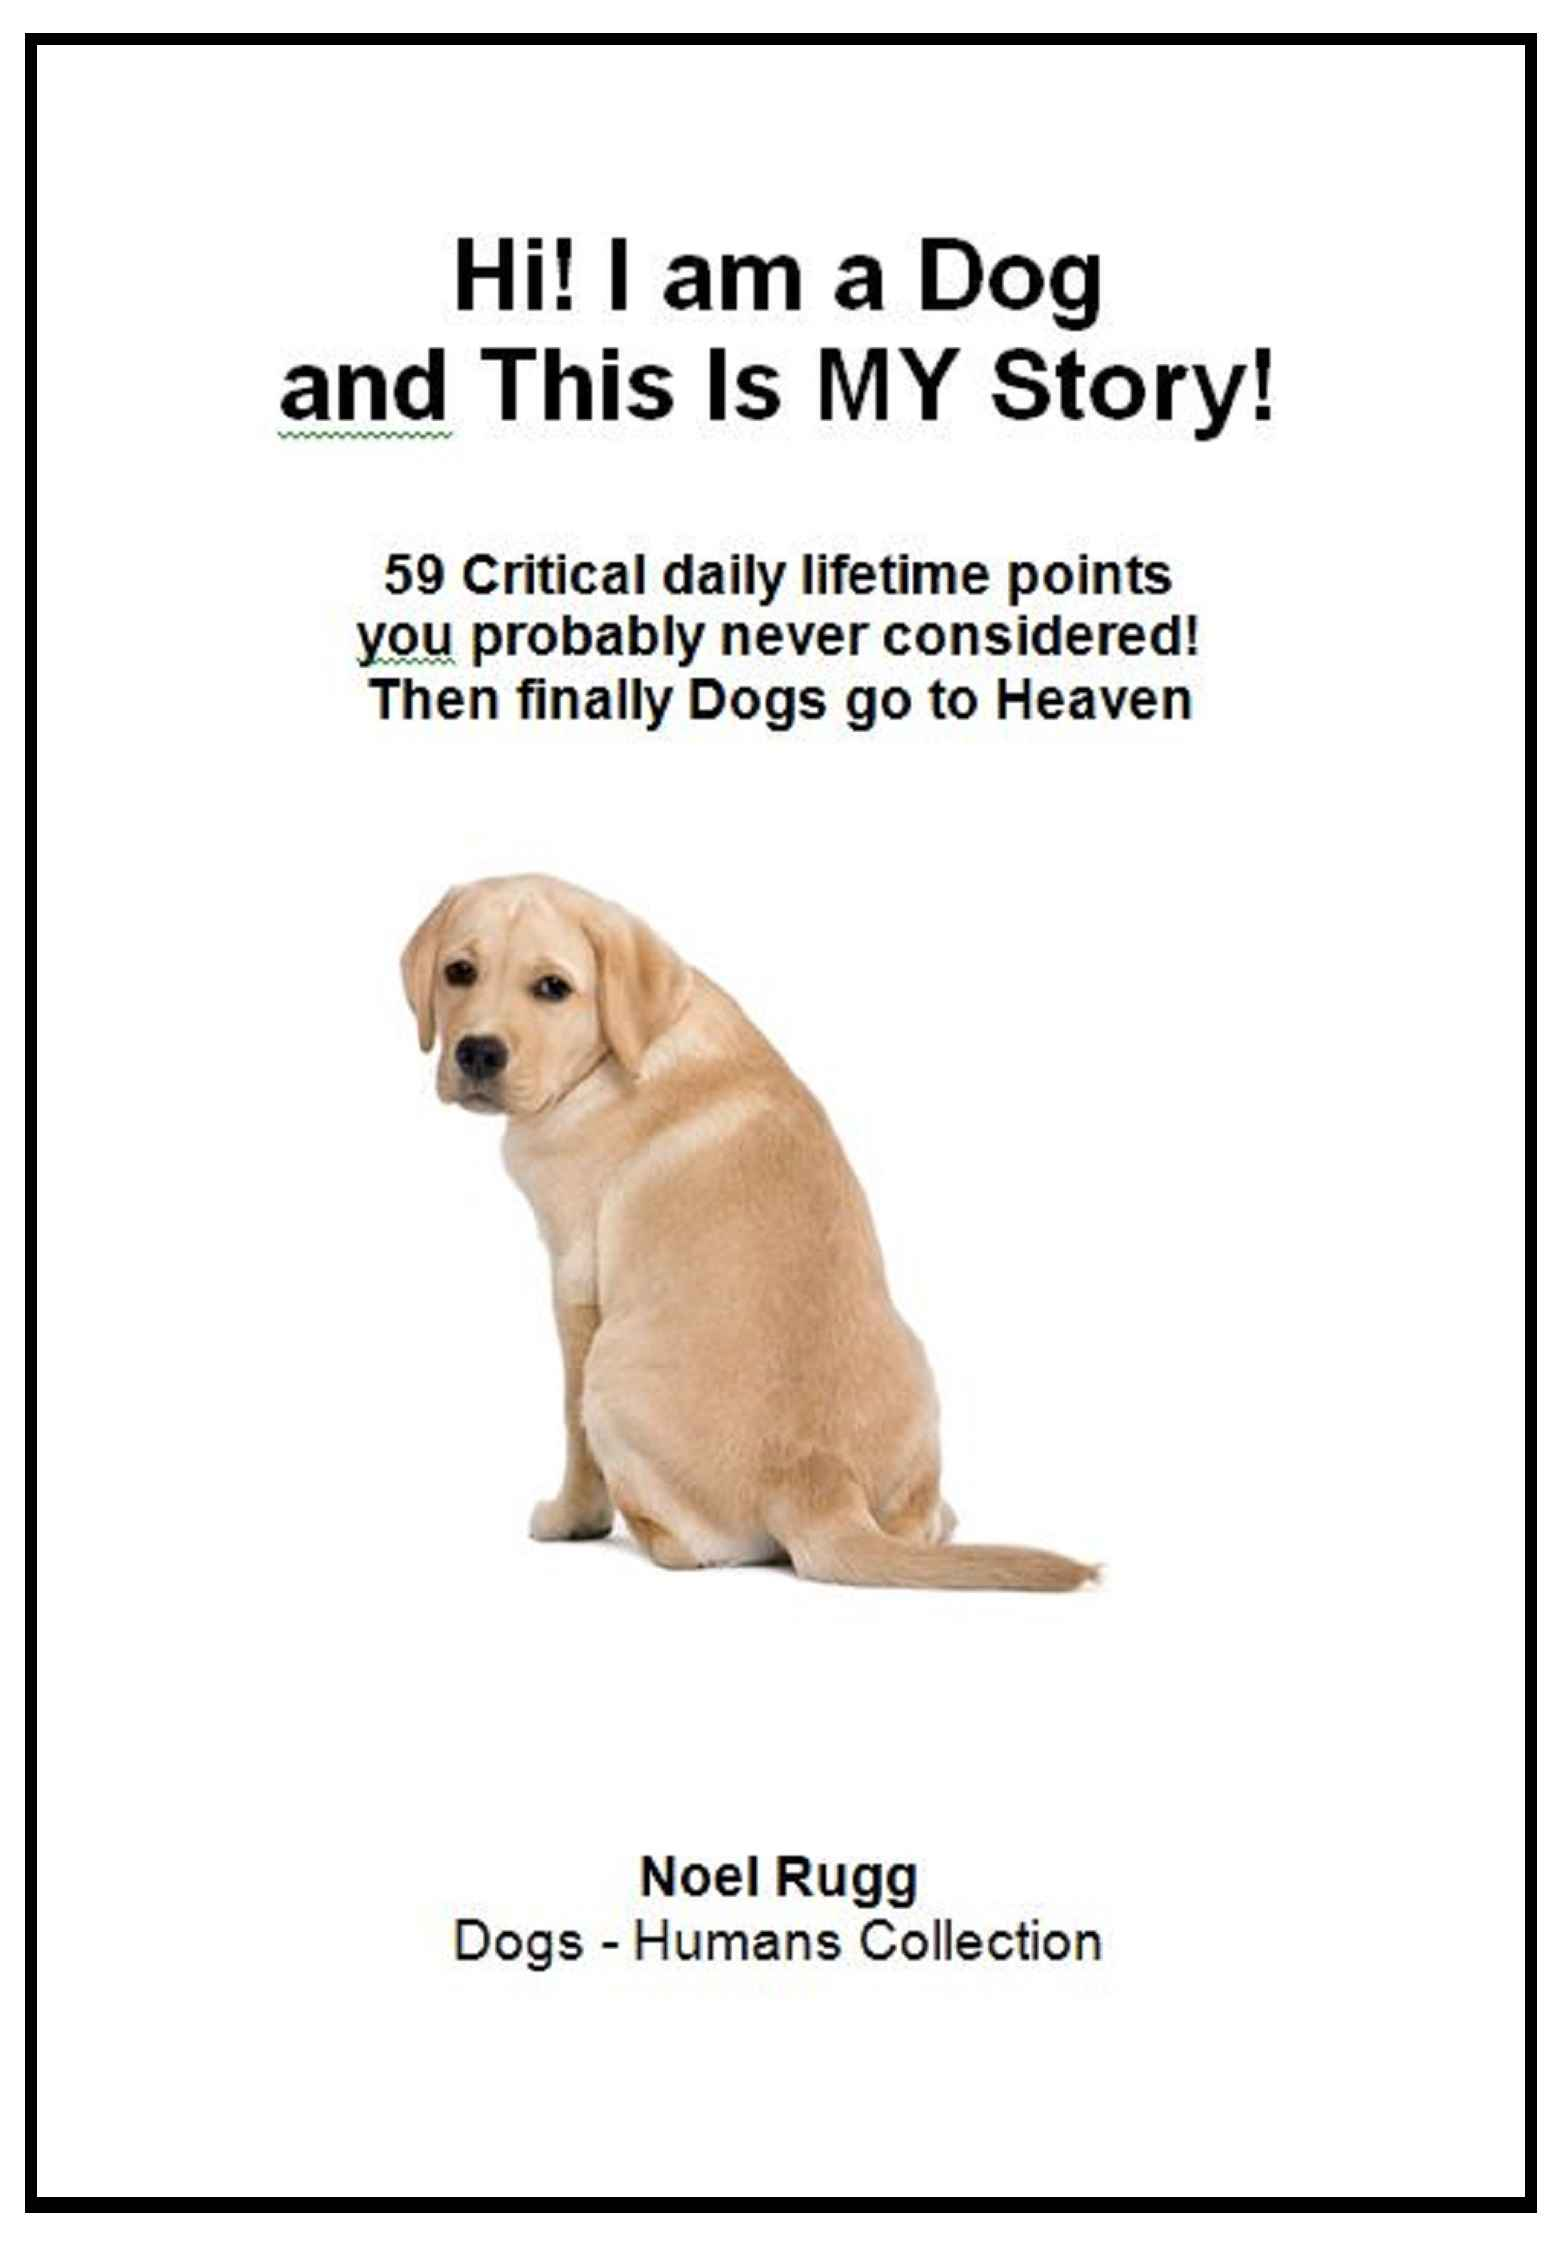 Hi! I am a Dog and This Is MY Story! – Lousy Book Covers